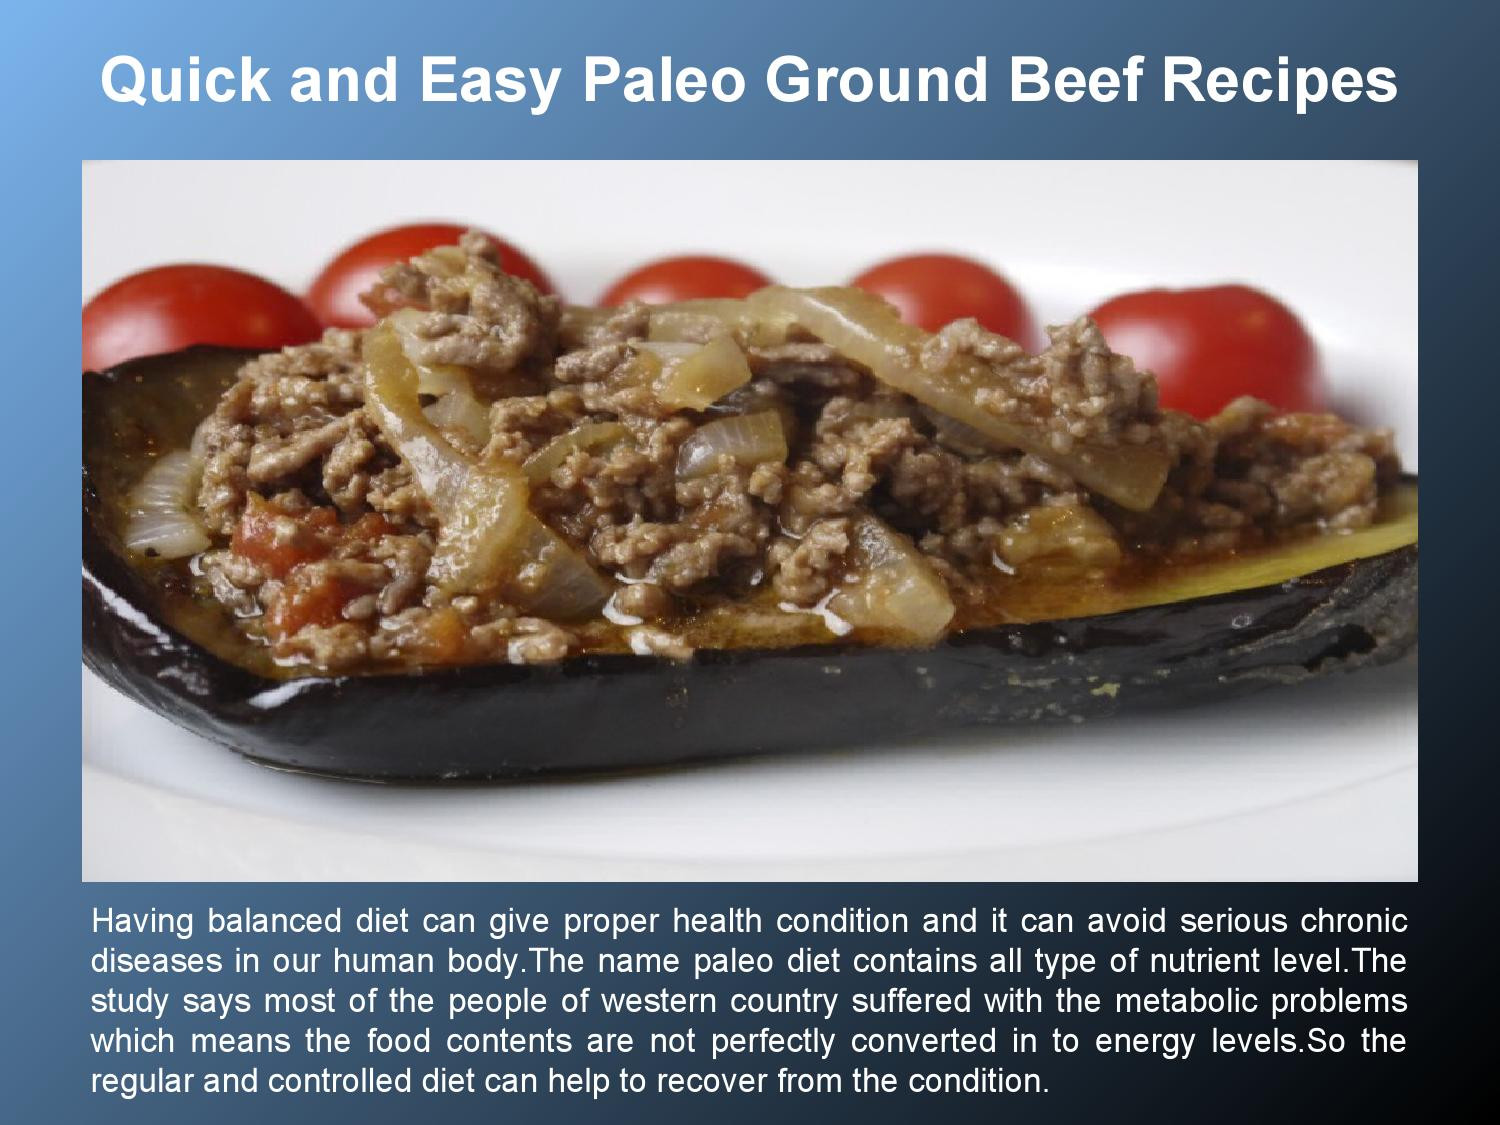 Quick Healthy Ground Beef Recipes  Quick Paleo Ground Beef Recipes by Marlin Dee issuu